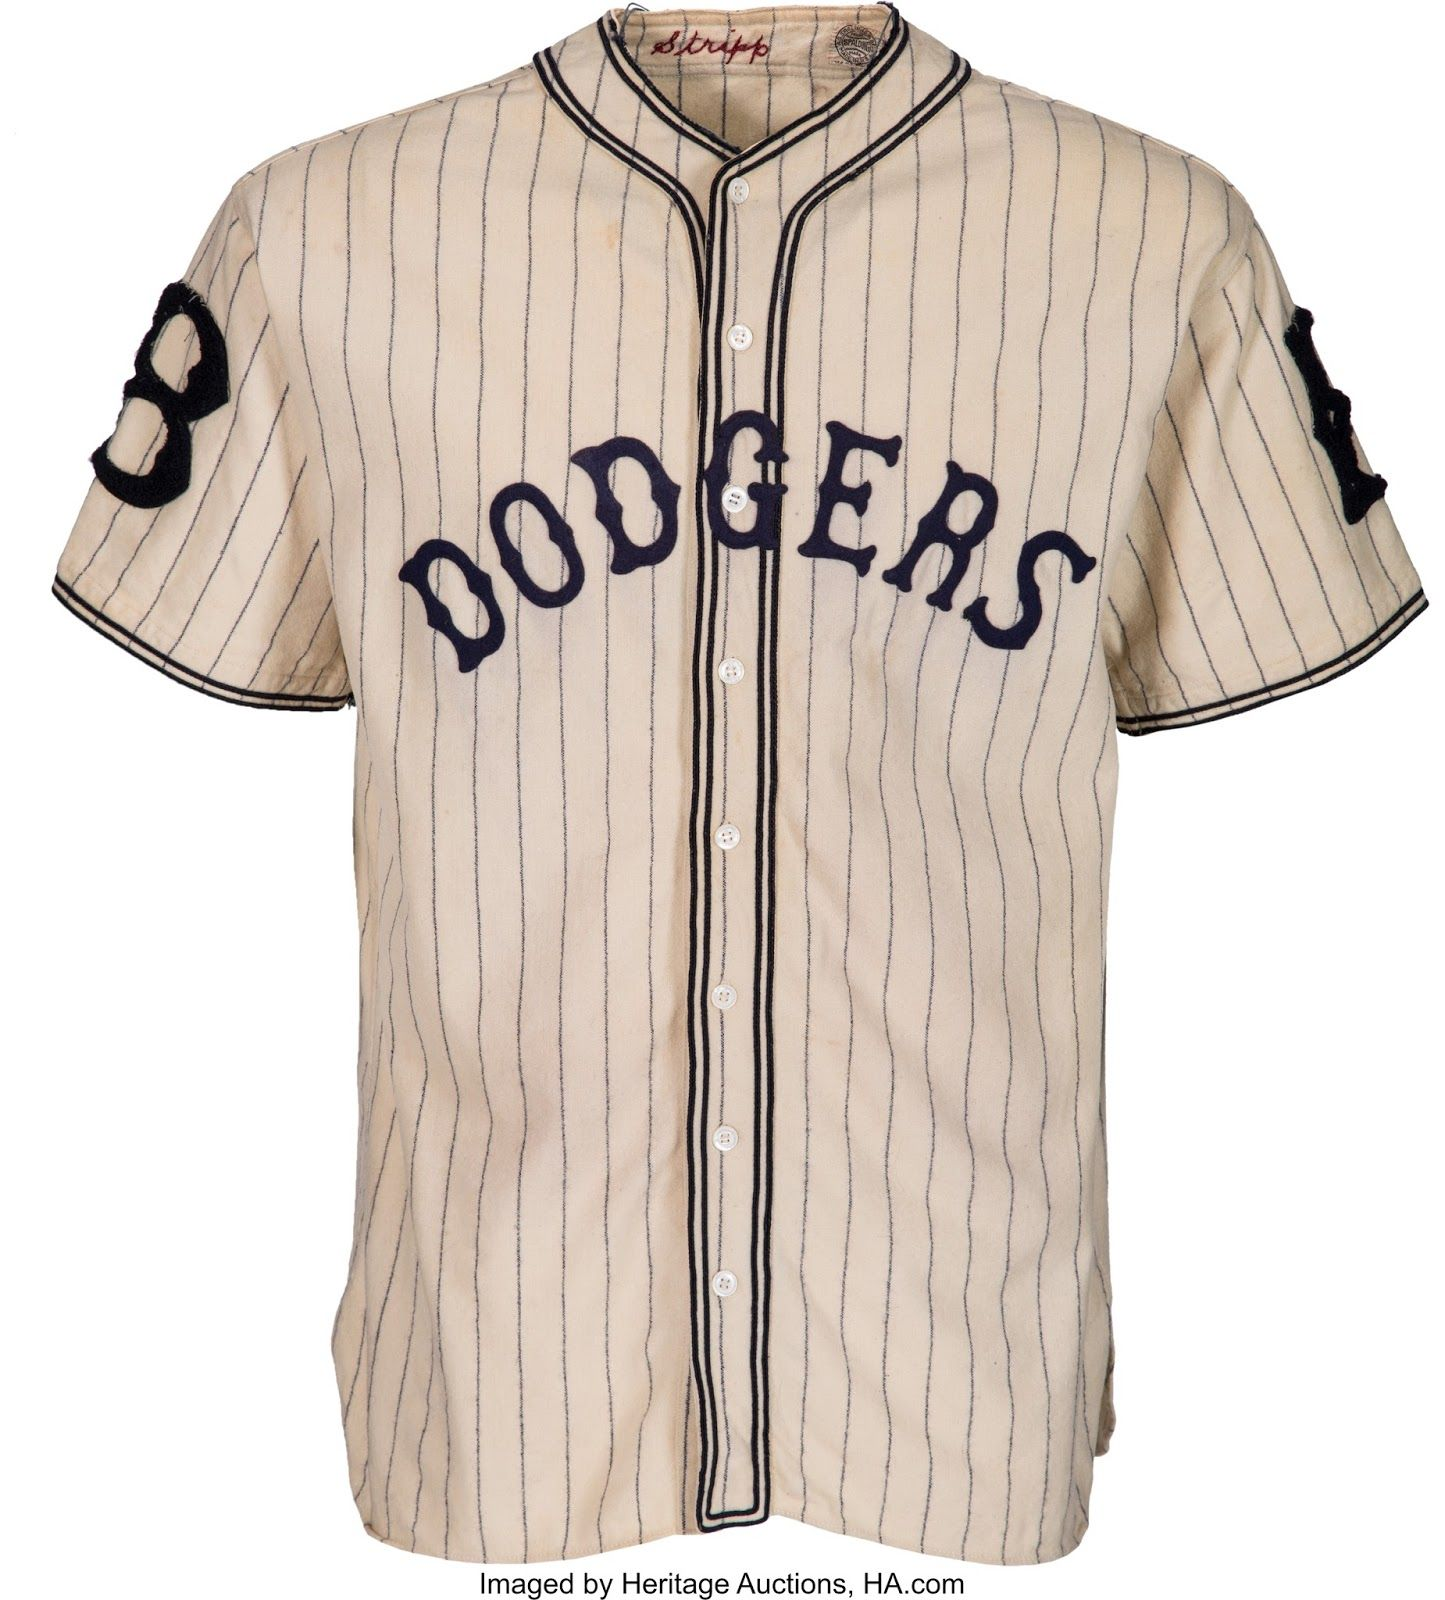 1393f226cec Check Out this Vintage Dodger Pinstripes Uniform - 1933